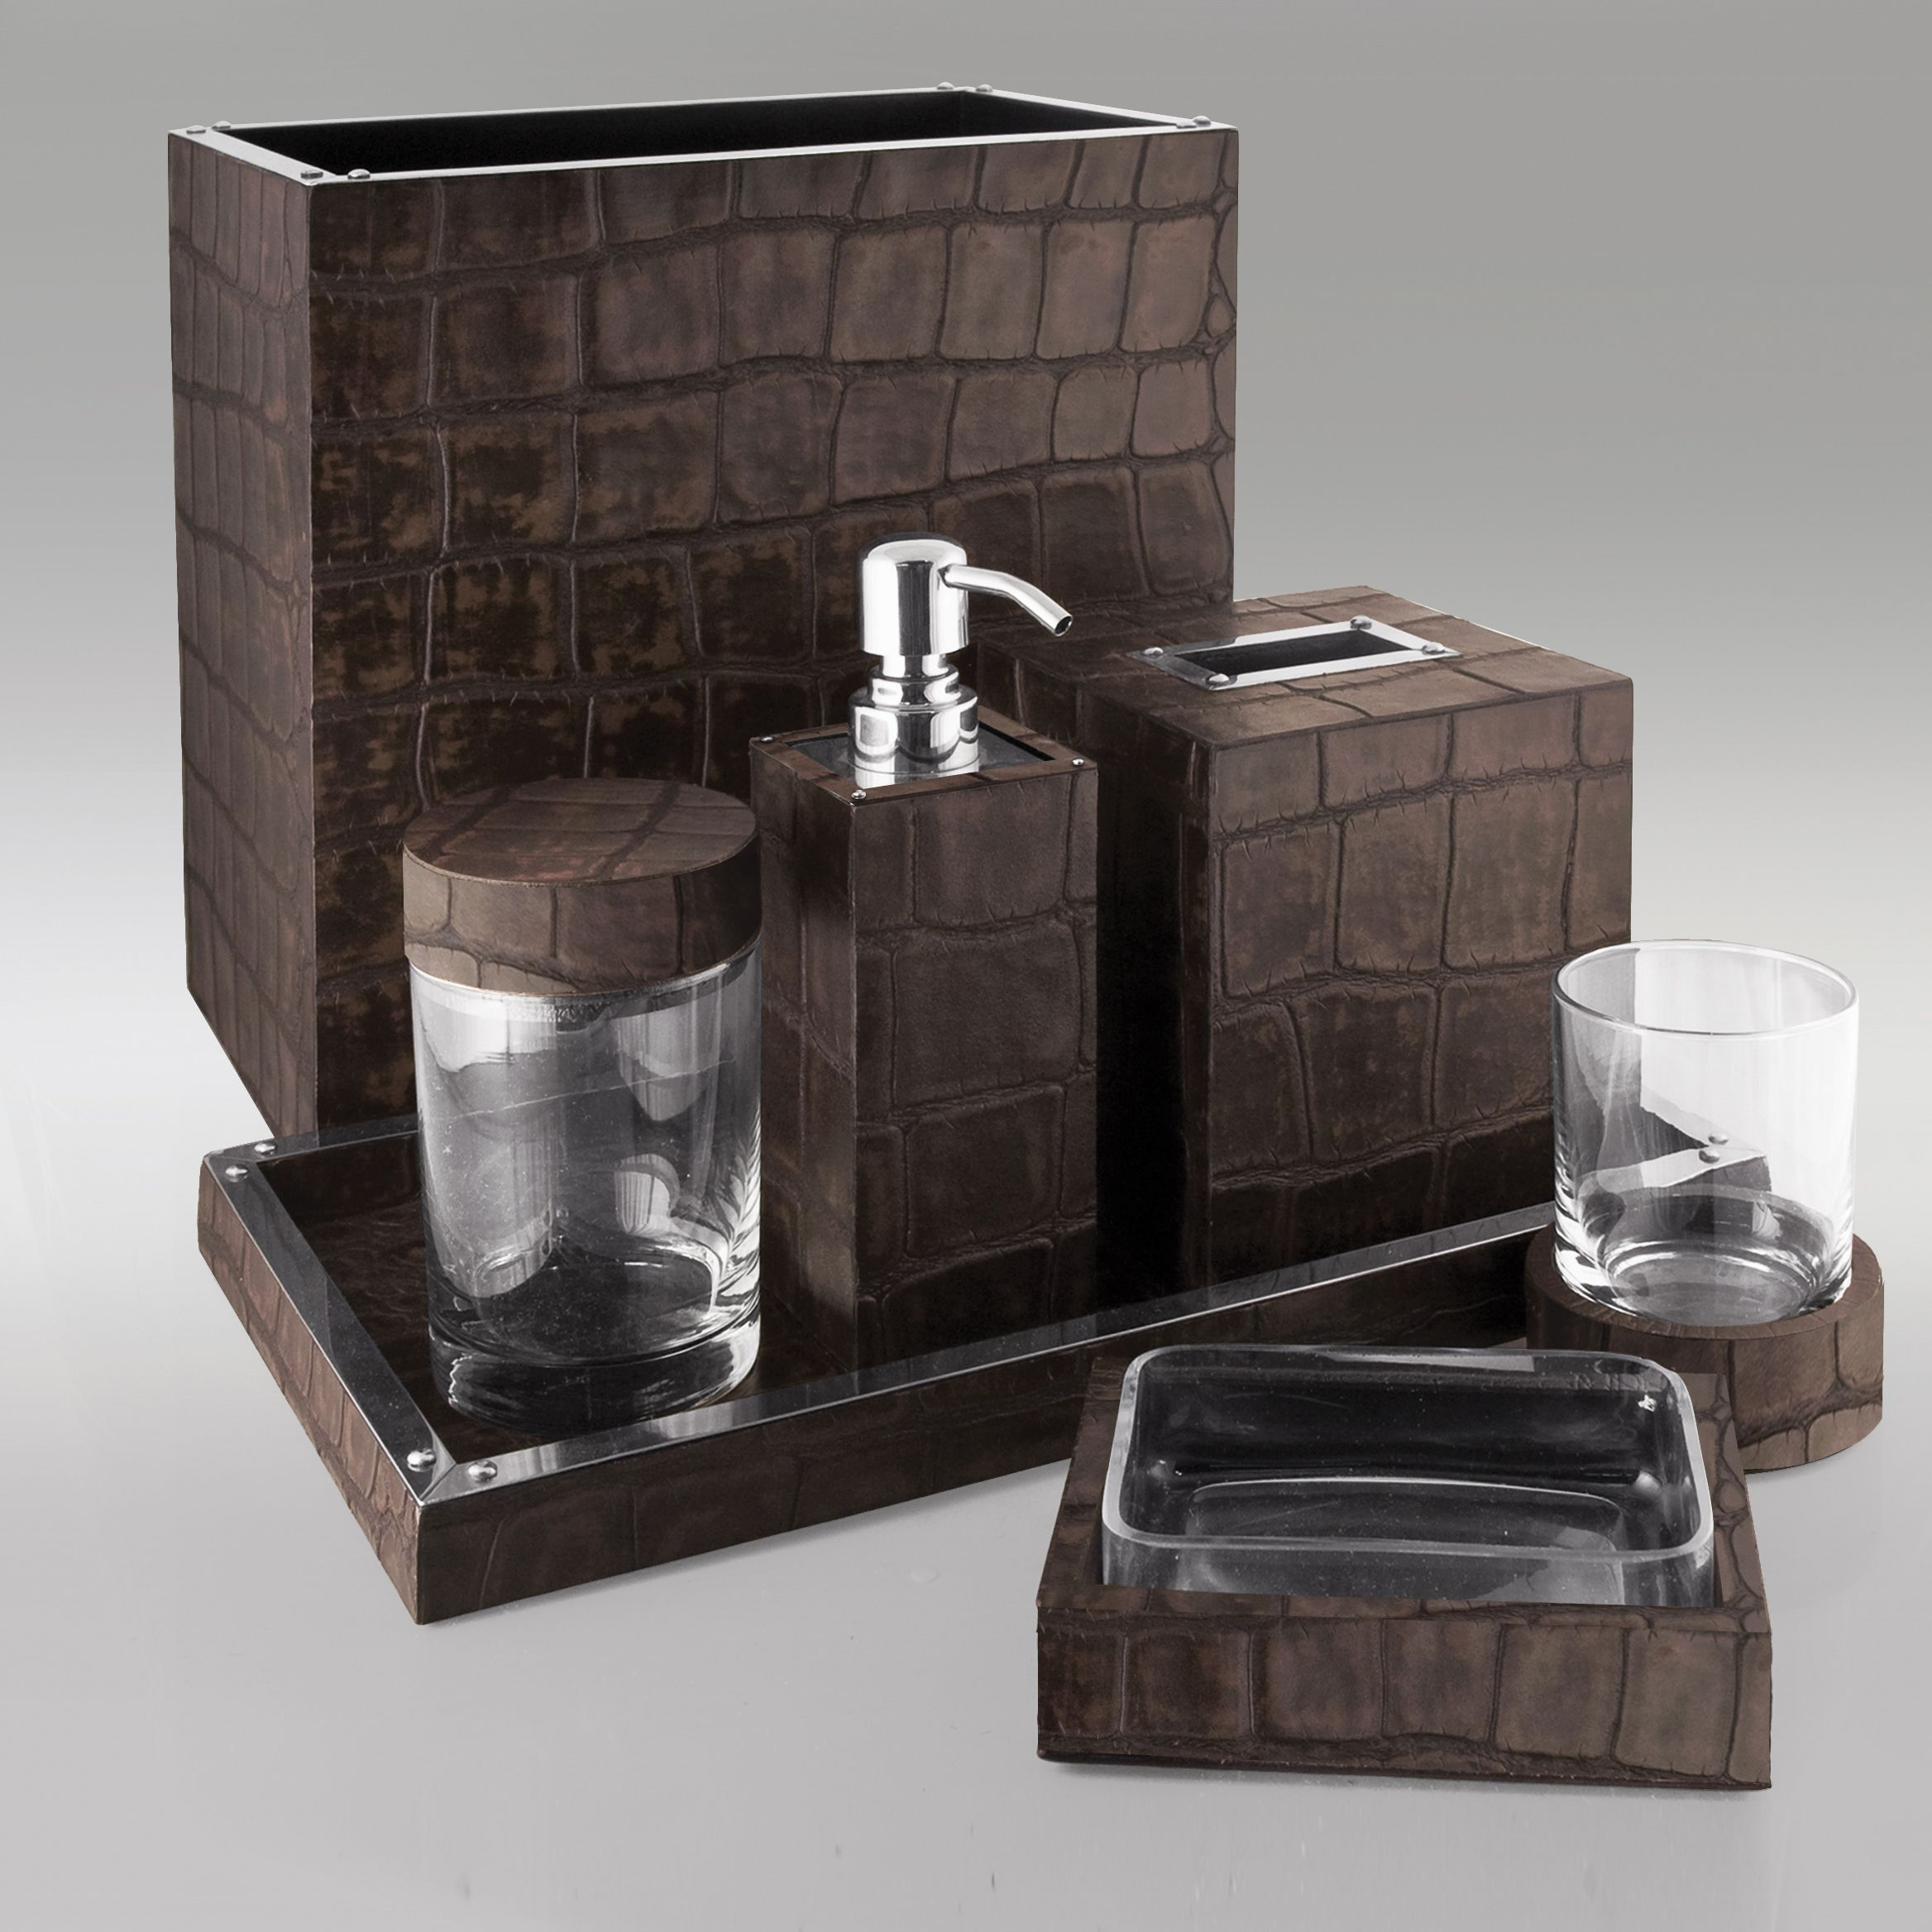 Dark Brown Alligator Embossed Leather Bath By Gail Deloach With